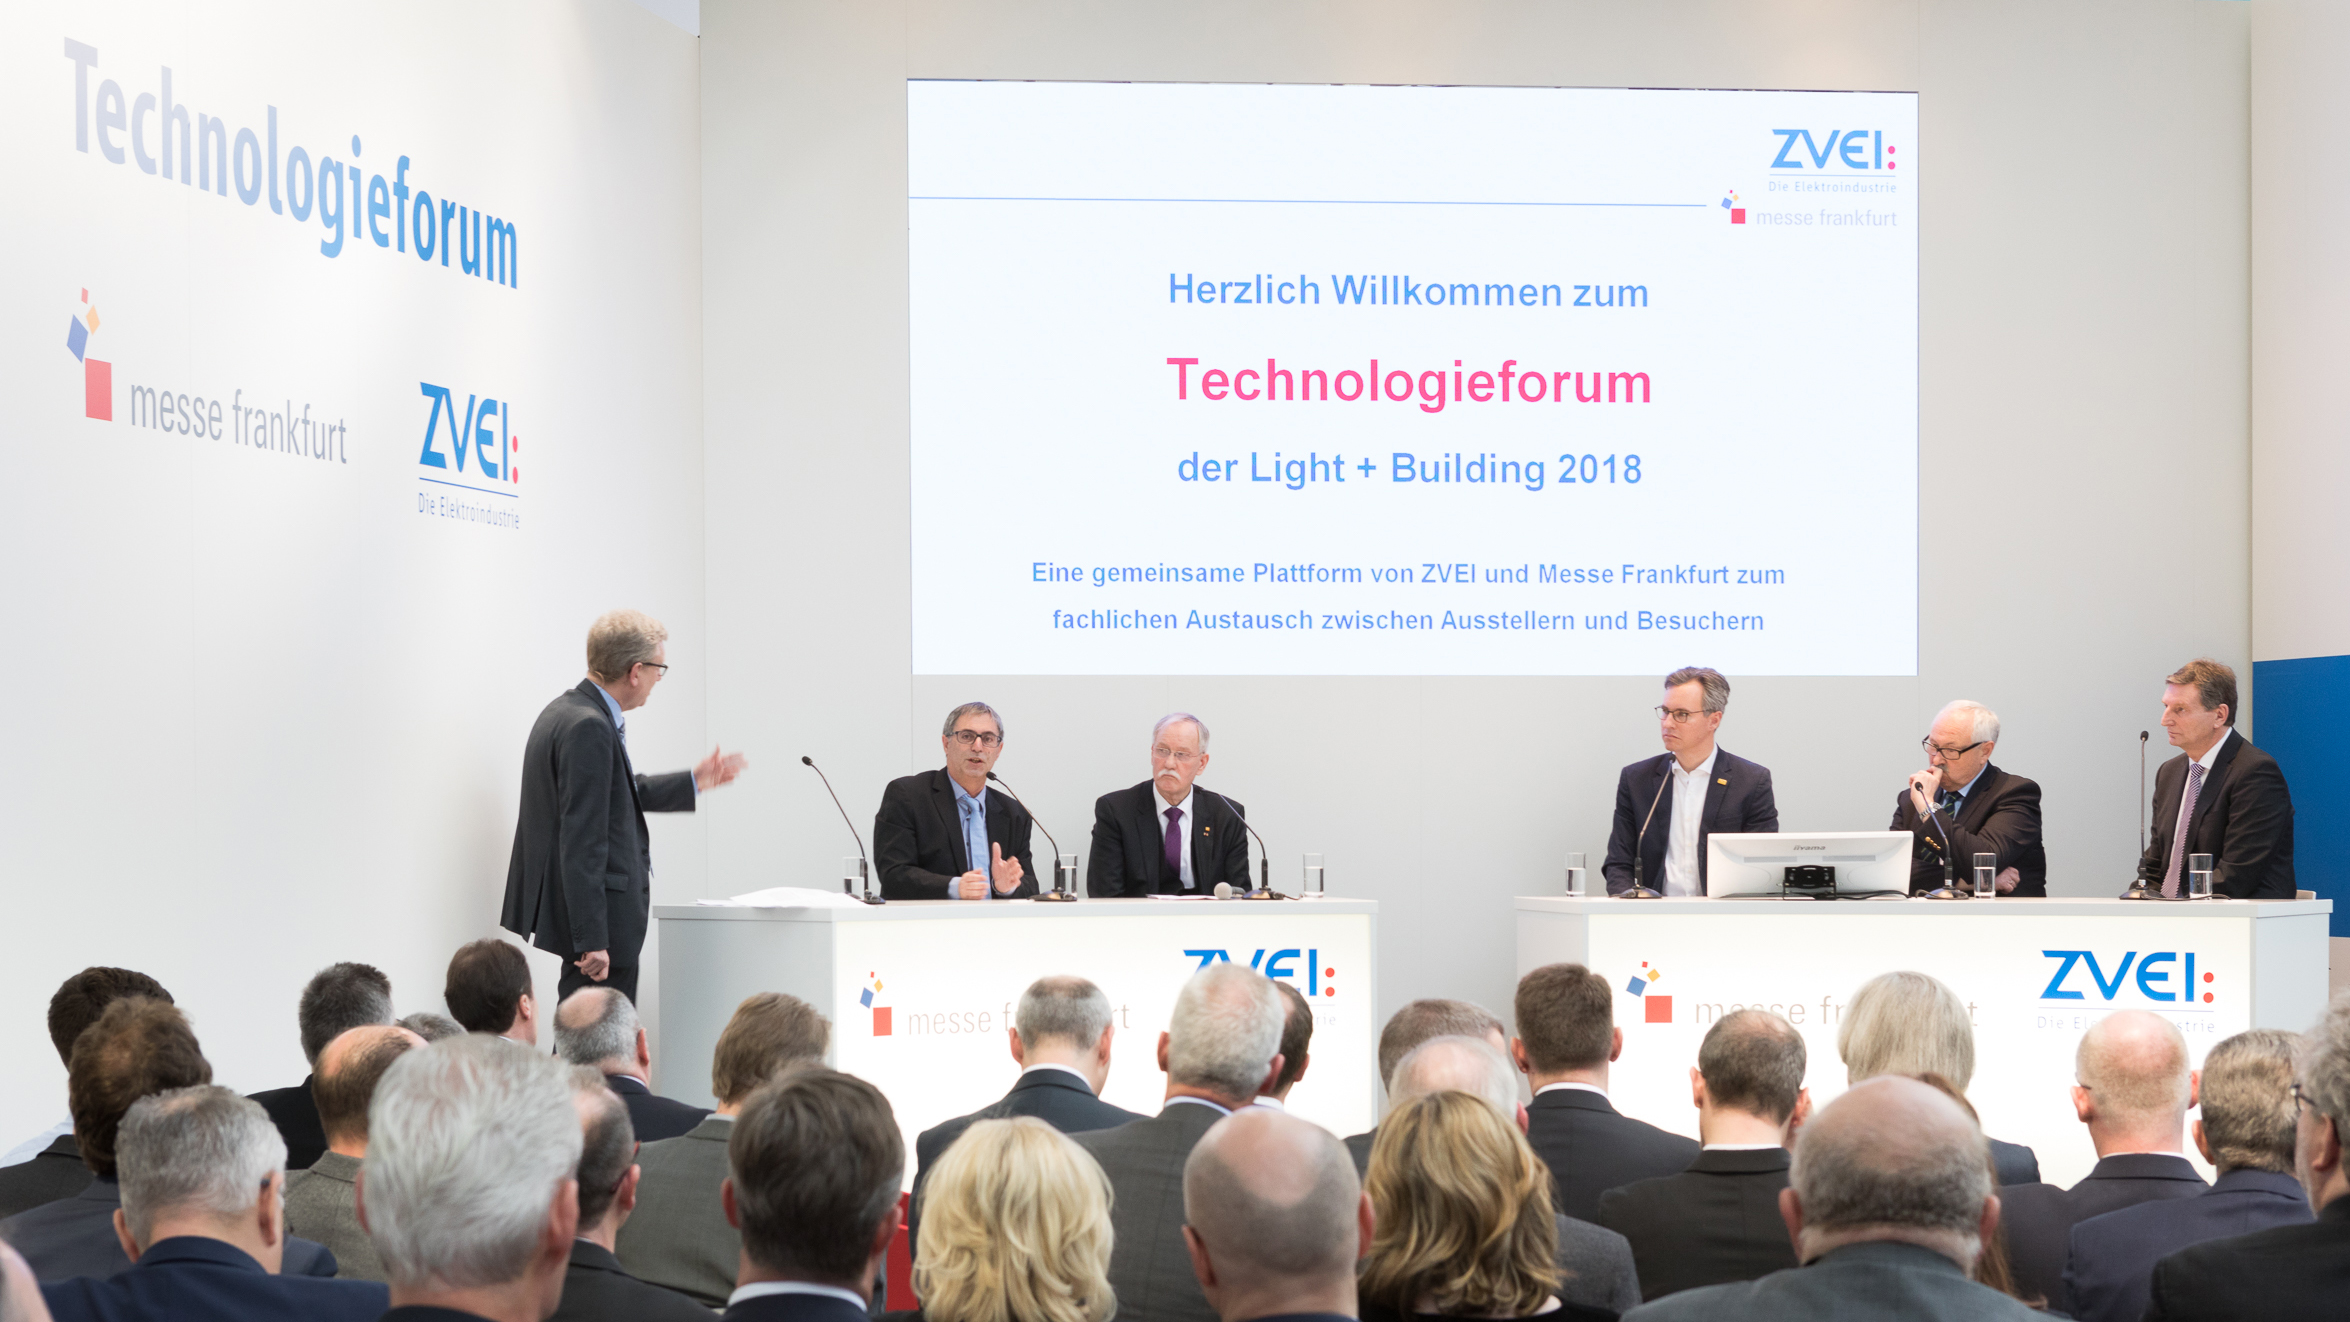 Technologieforum der Light + Building